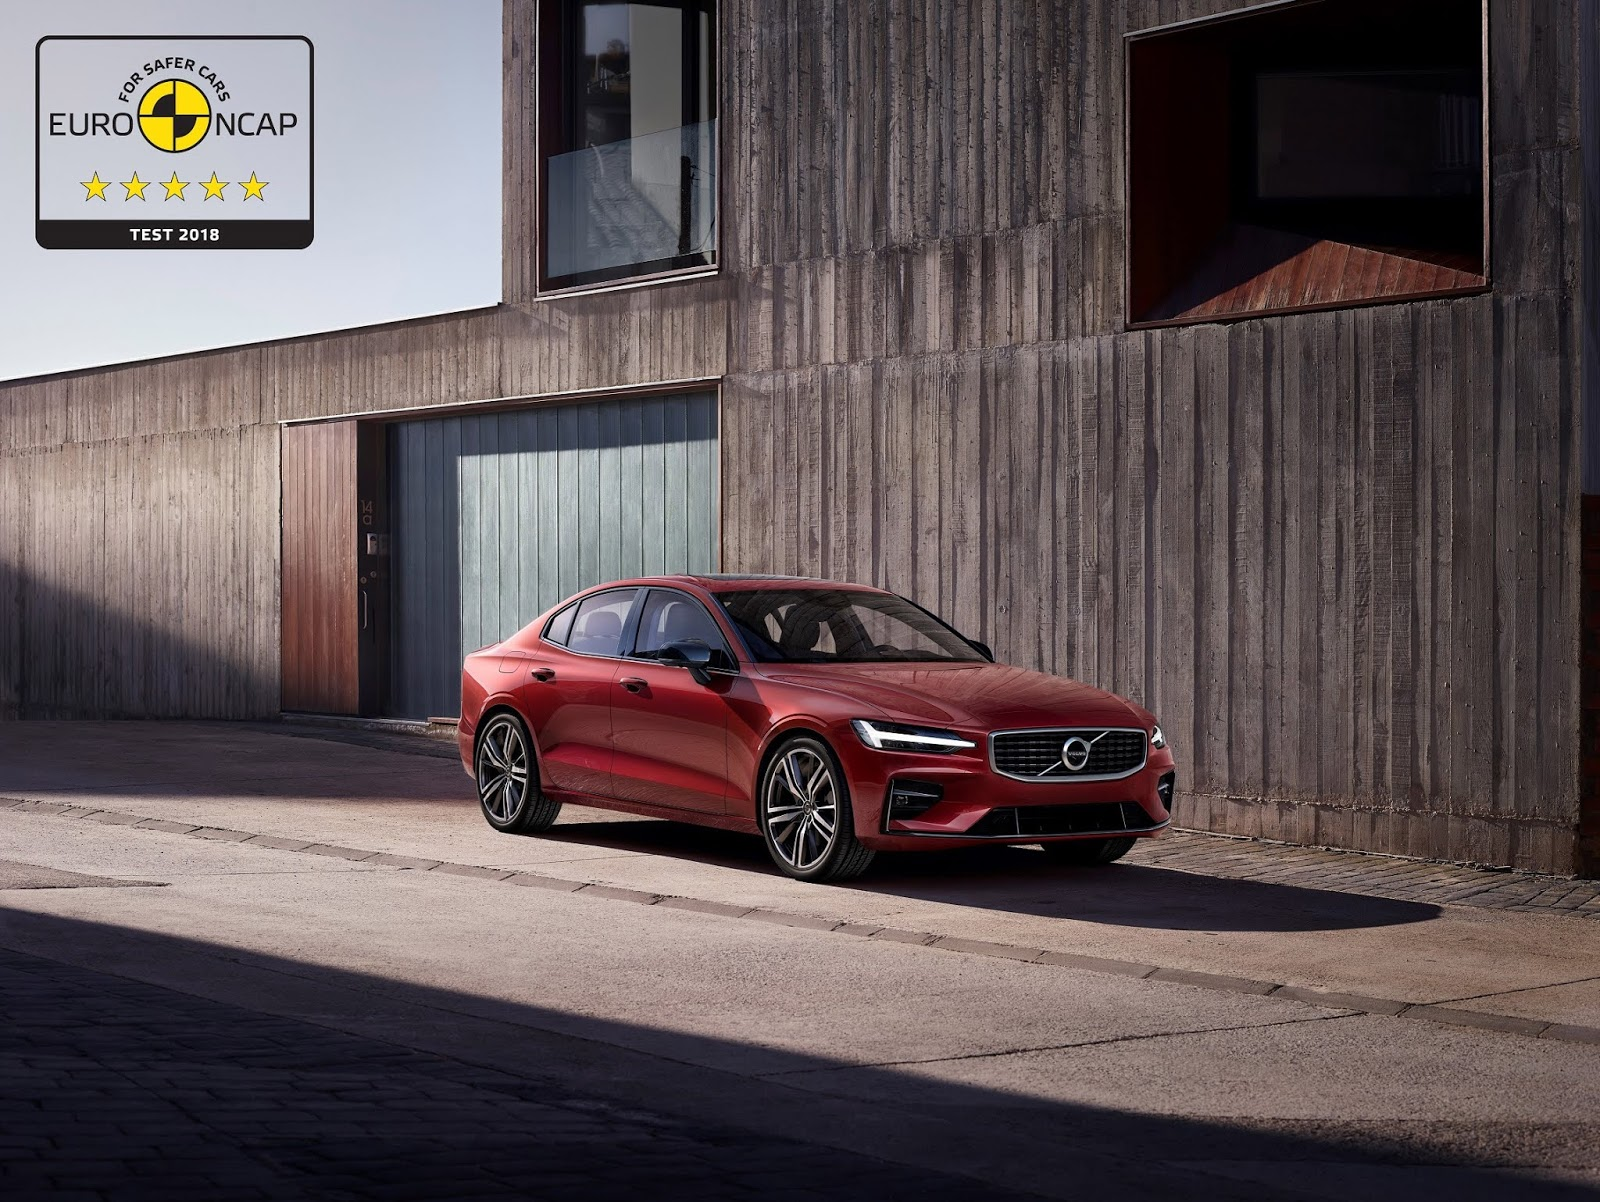 246534 Volvo S60 and V60 secure 5 star safety rating by Euro NCAP2B1 Συνεχίζουν το σερί 5 αστέρων τα Volvo S60 και V60